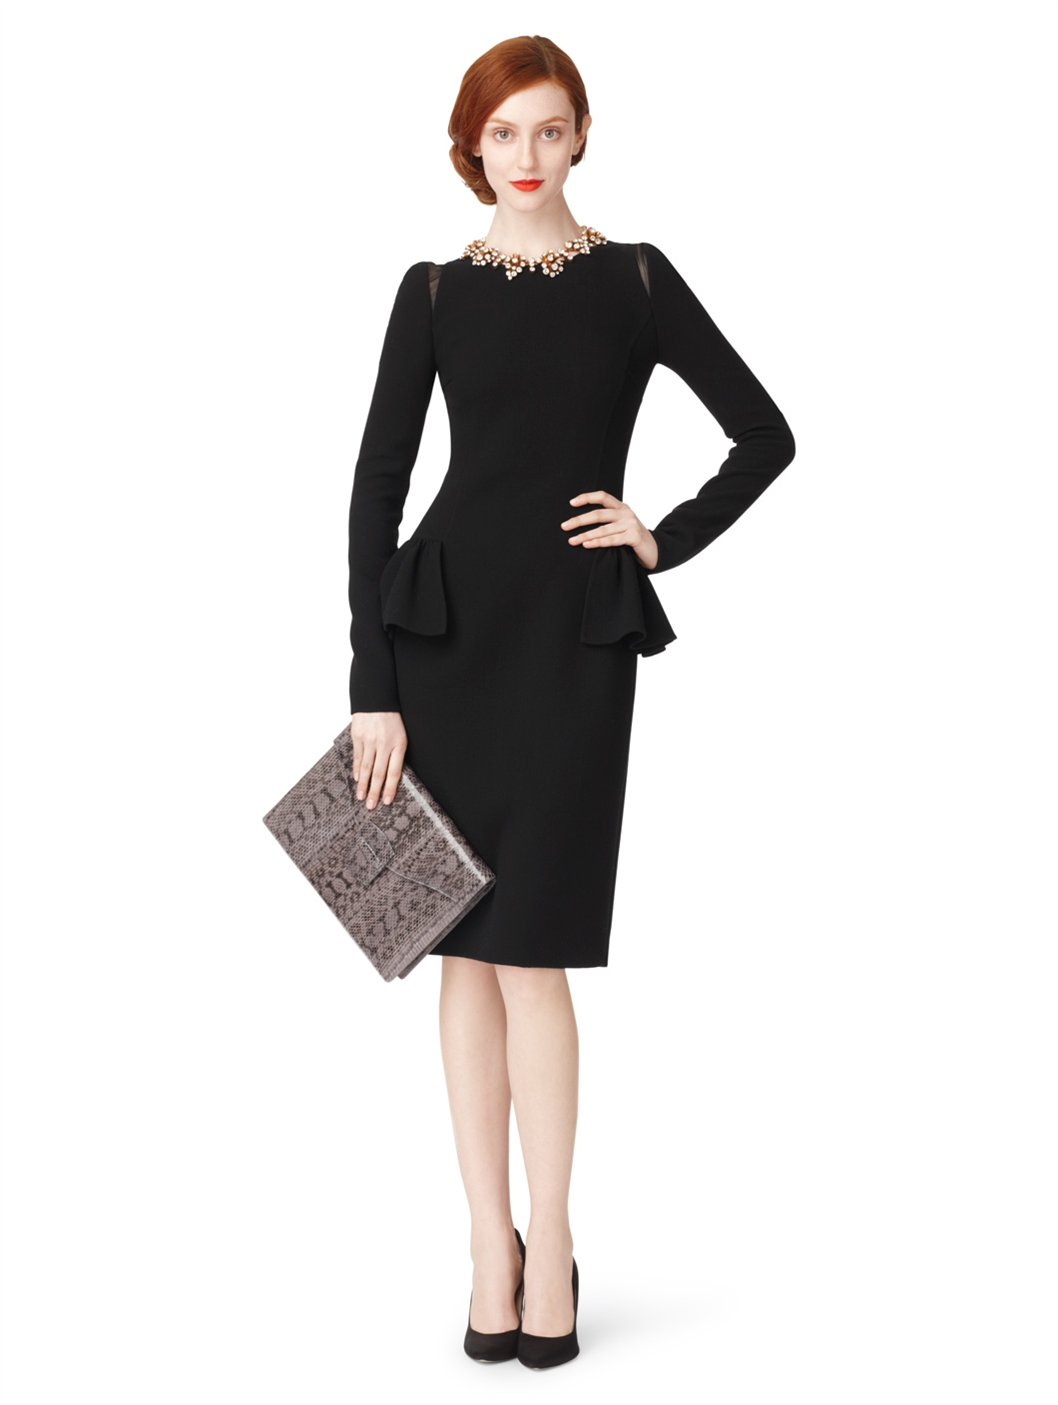 Shop for BLACK M Knee Length Work Pencil Long Sleeve Peplum Dress online at $ and discover fashion at nakedprogrammzce.cf Cheapest and Latest women & men fashion site including categories such as dresses, shoes, bags and jewelry with free shipping all over the world.